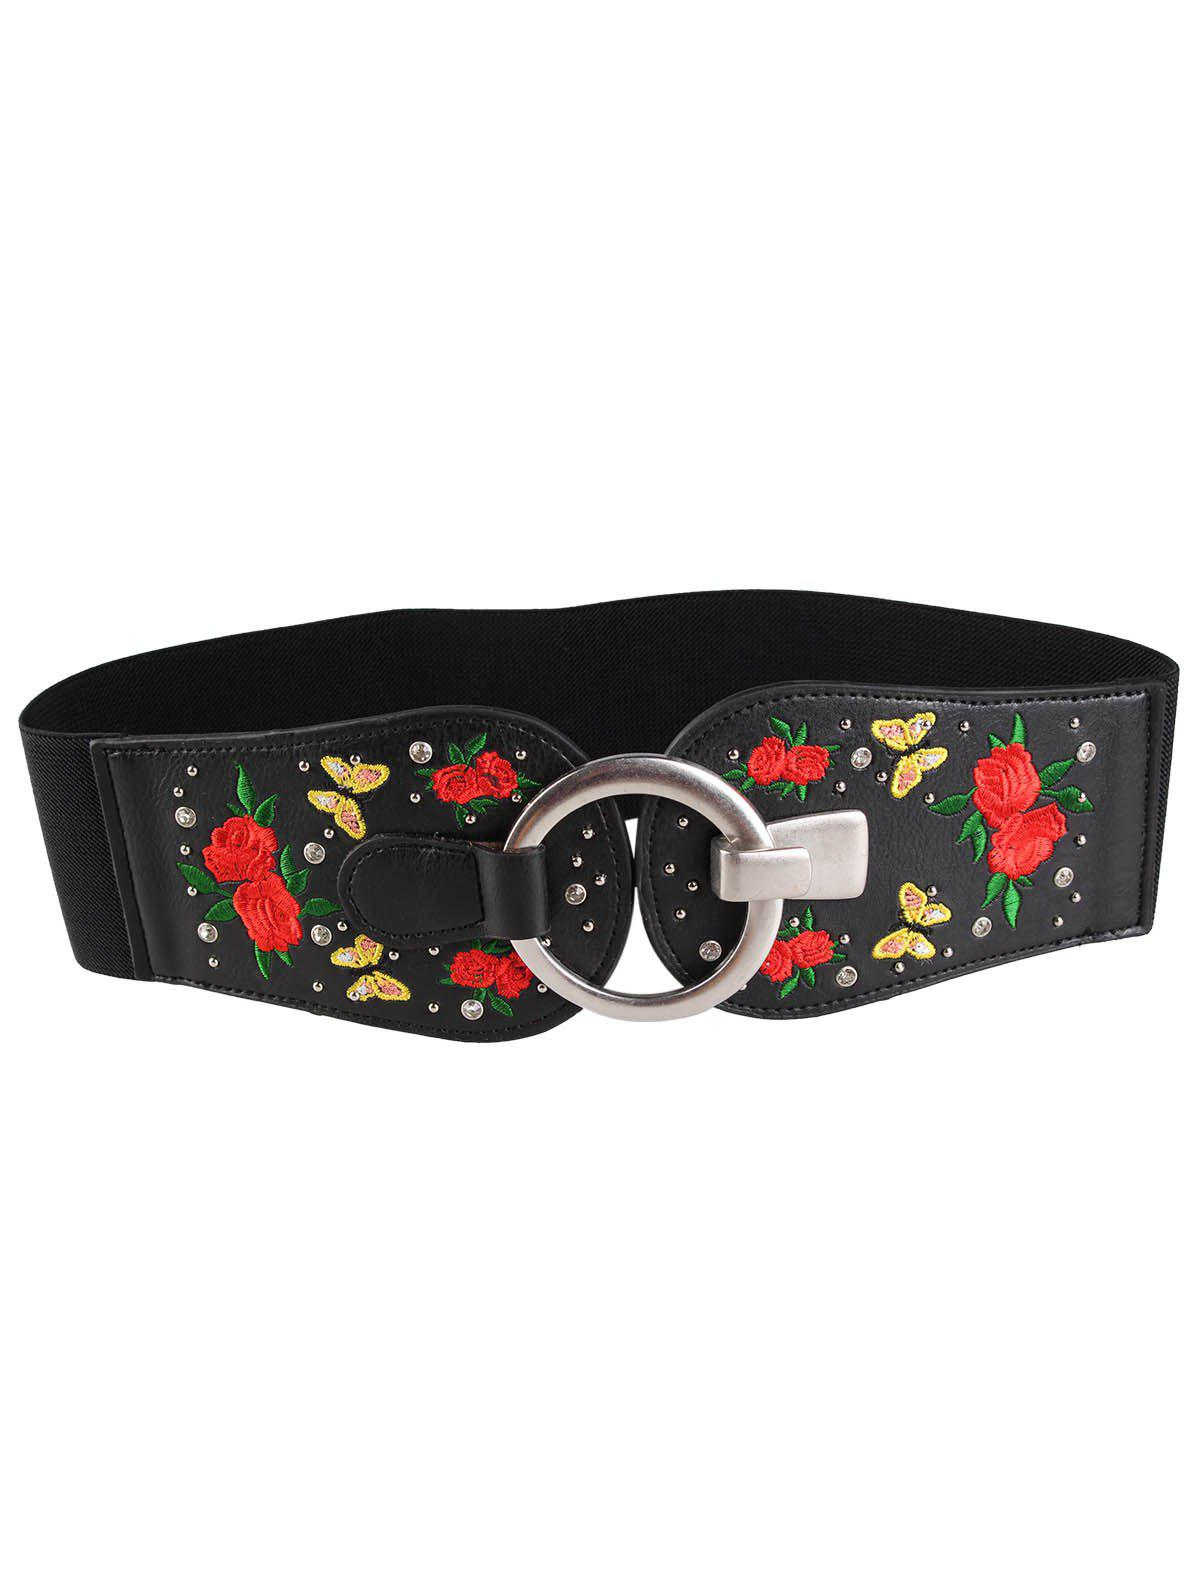 Affordable Vintage Round Buckle Embellished Floral Embroidery Wide Waist Belt